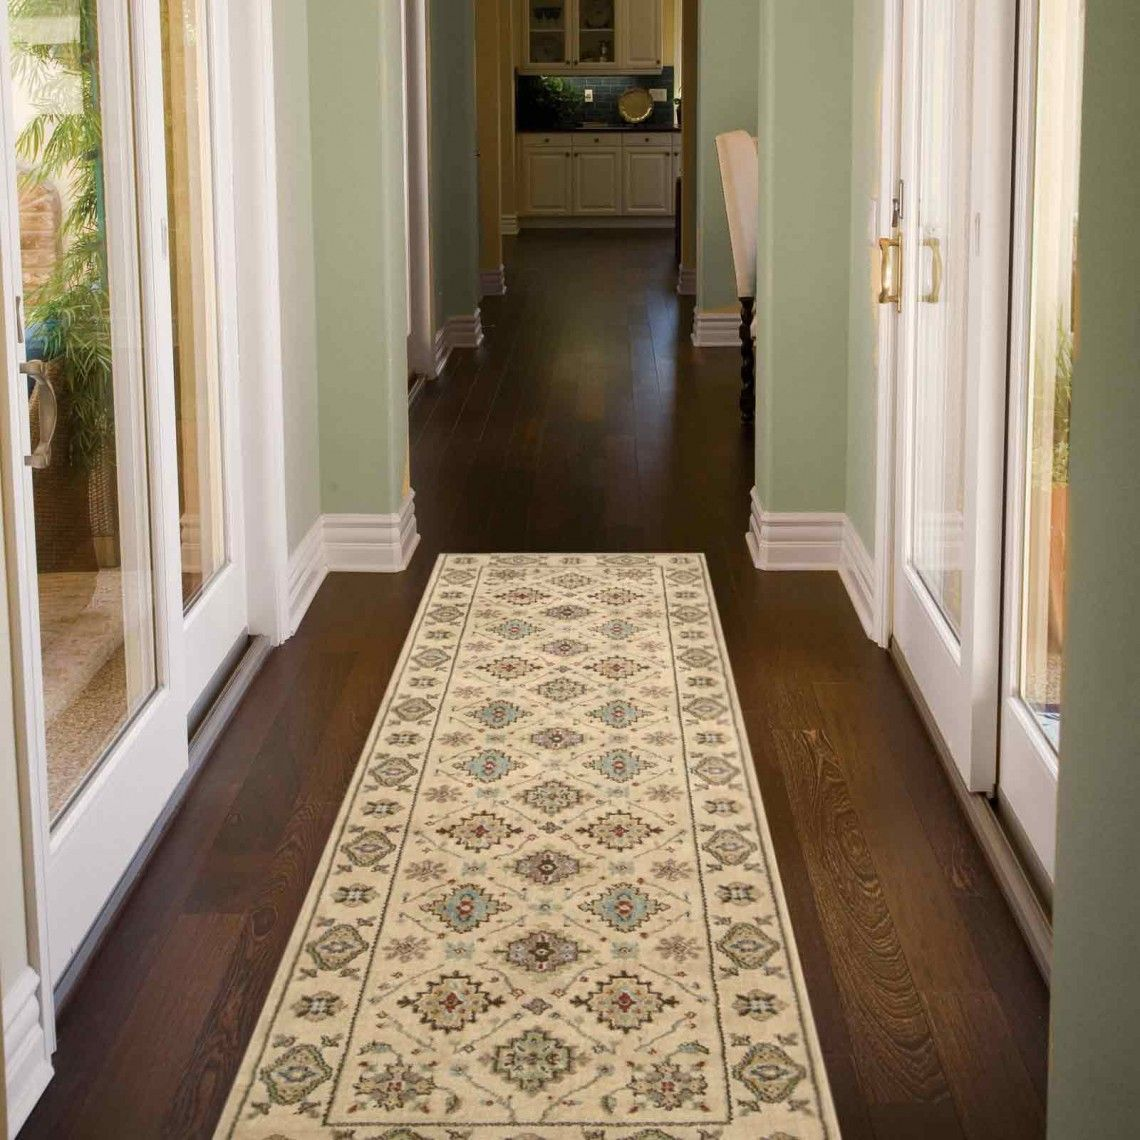 Kitchen Floor Runner Mondrian Kazak Hallway Runners With Dark Wood Floor And Glass Door